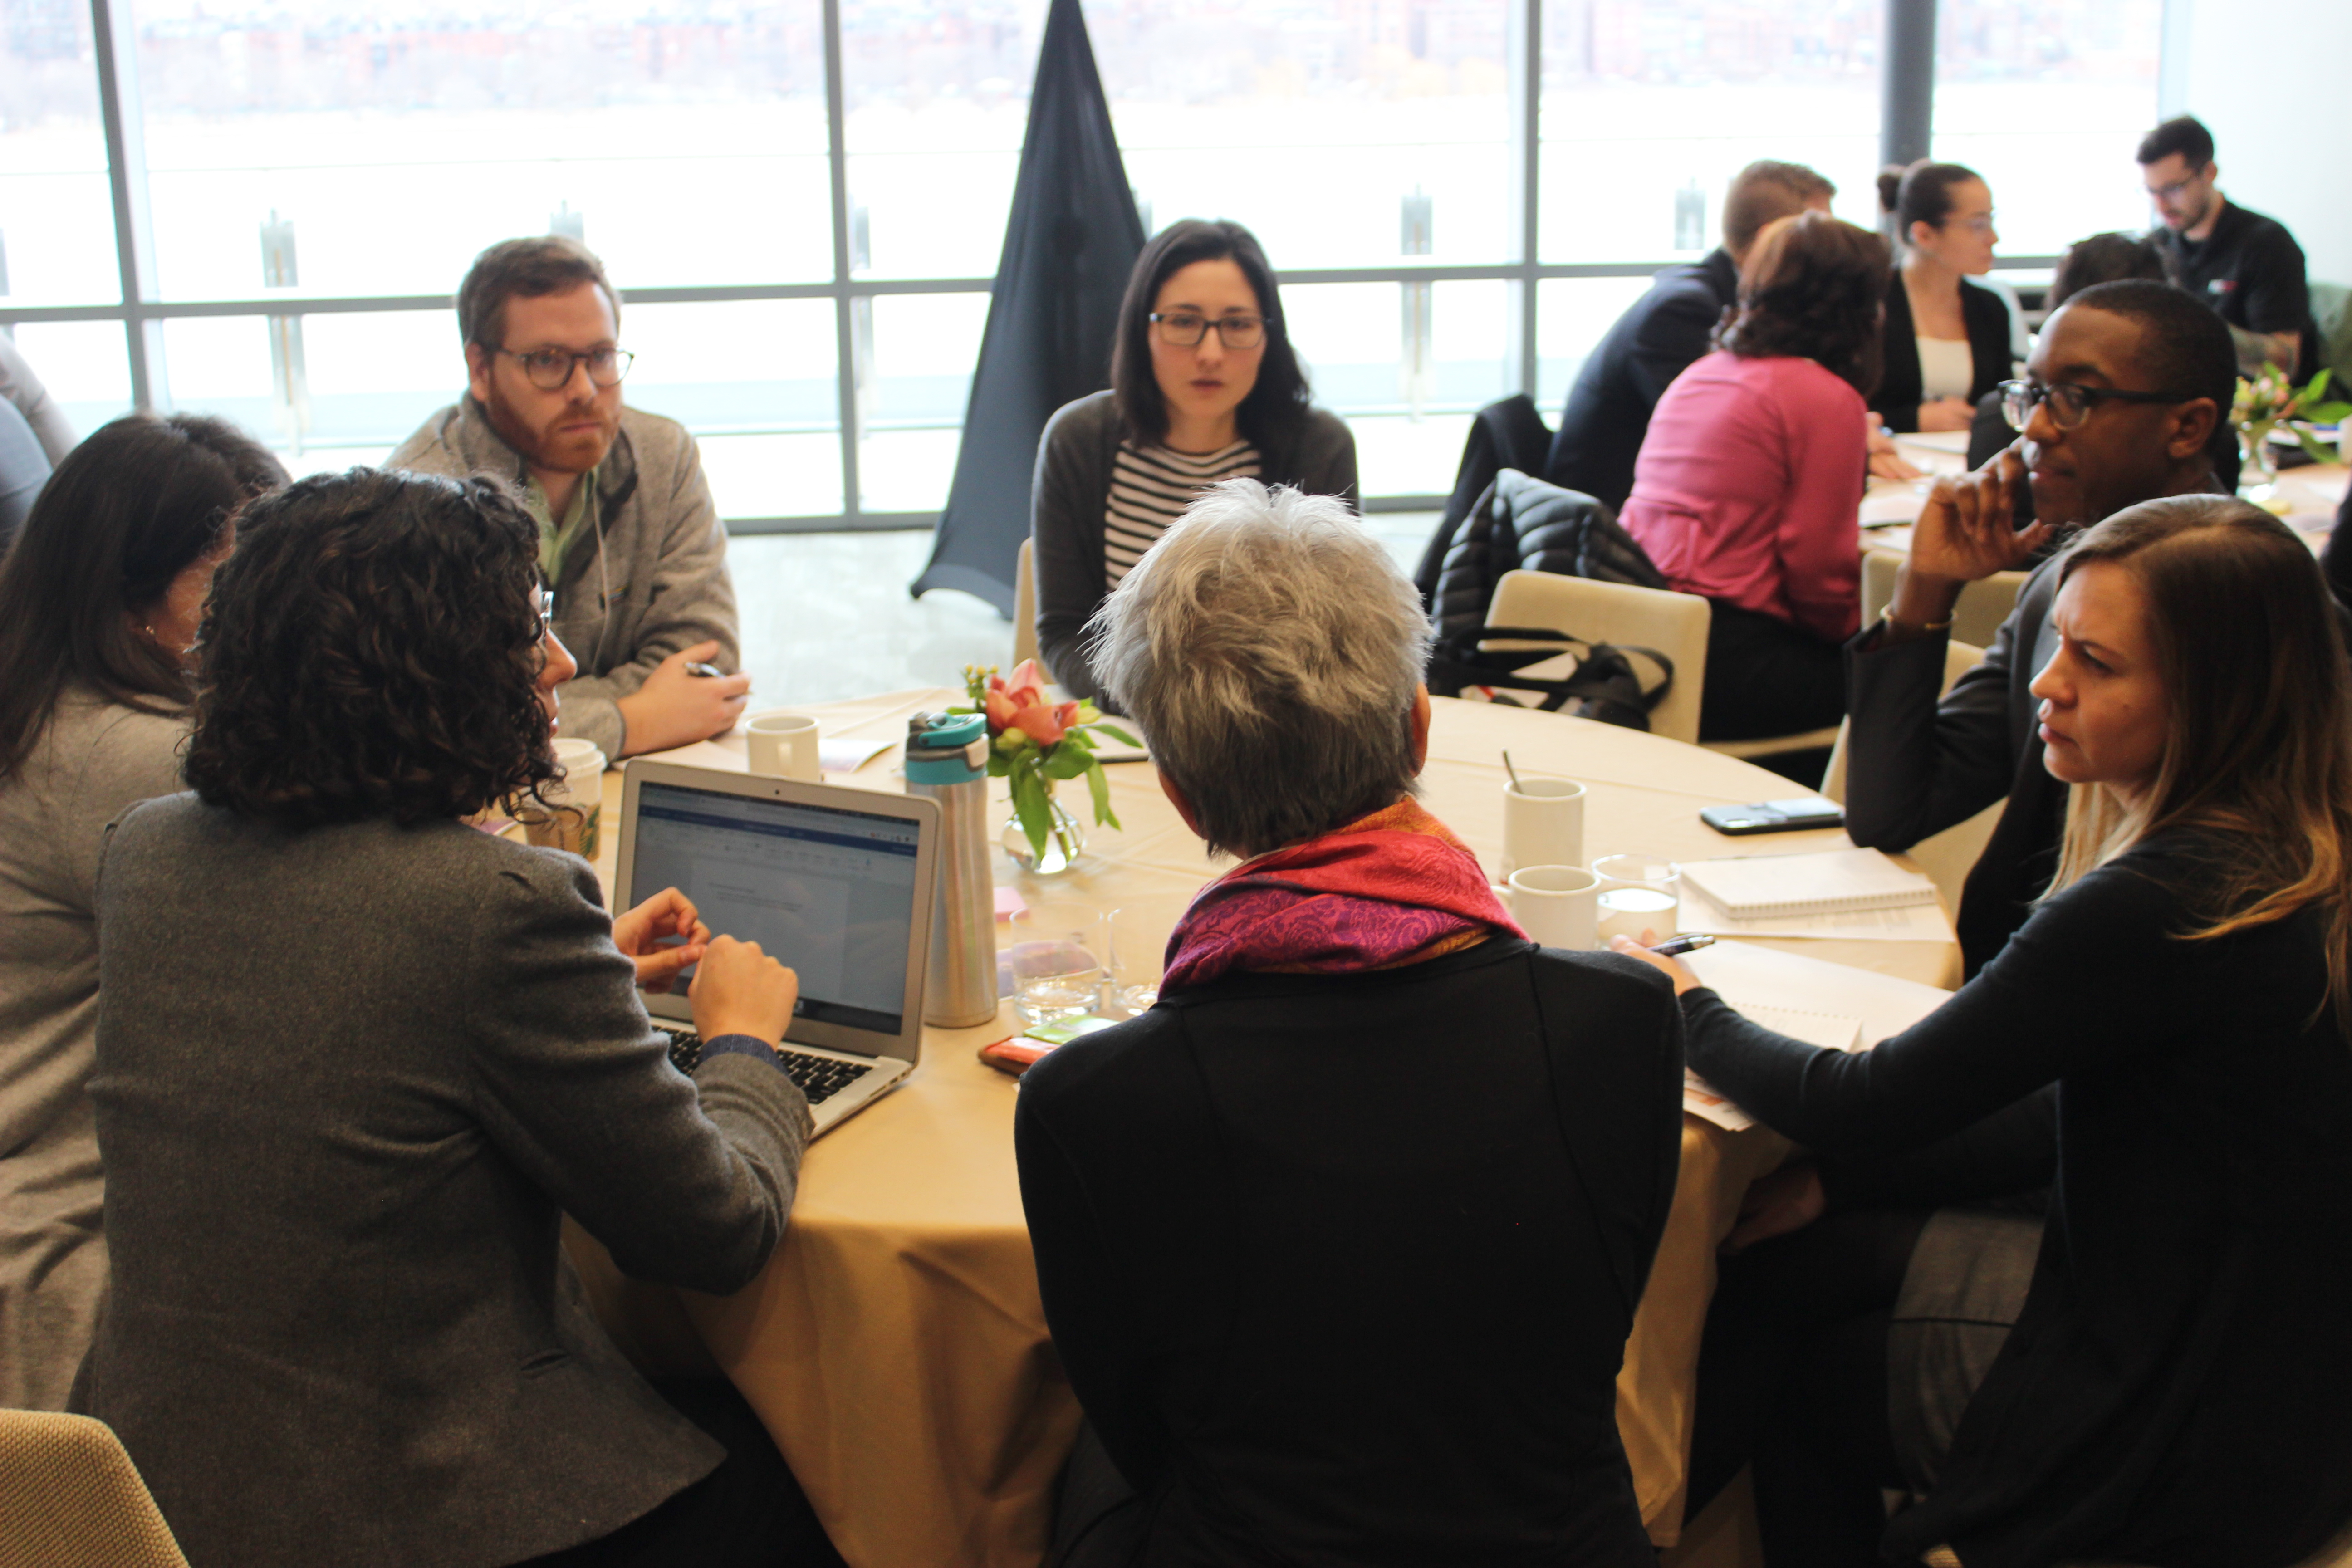 Participants at last year's convening for the State and Local Innovation Initiative discuss open questions around developing evaluations during a breakout session.